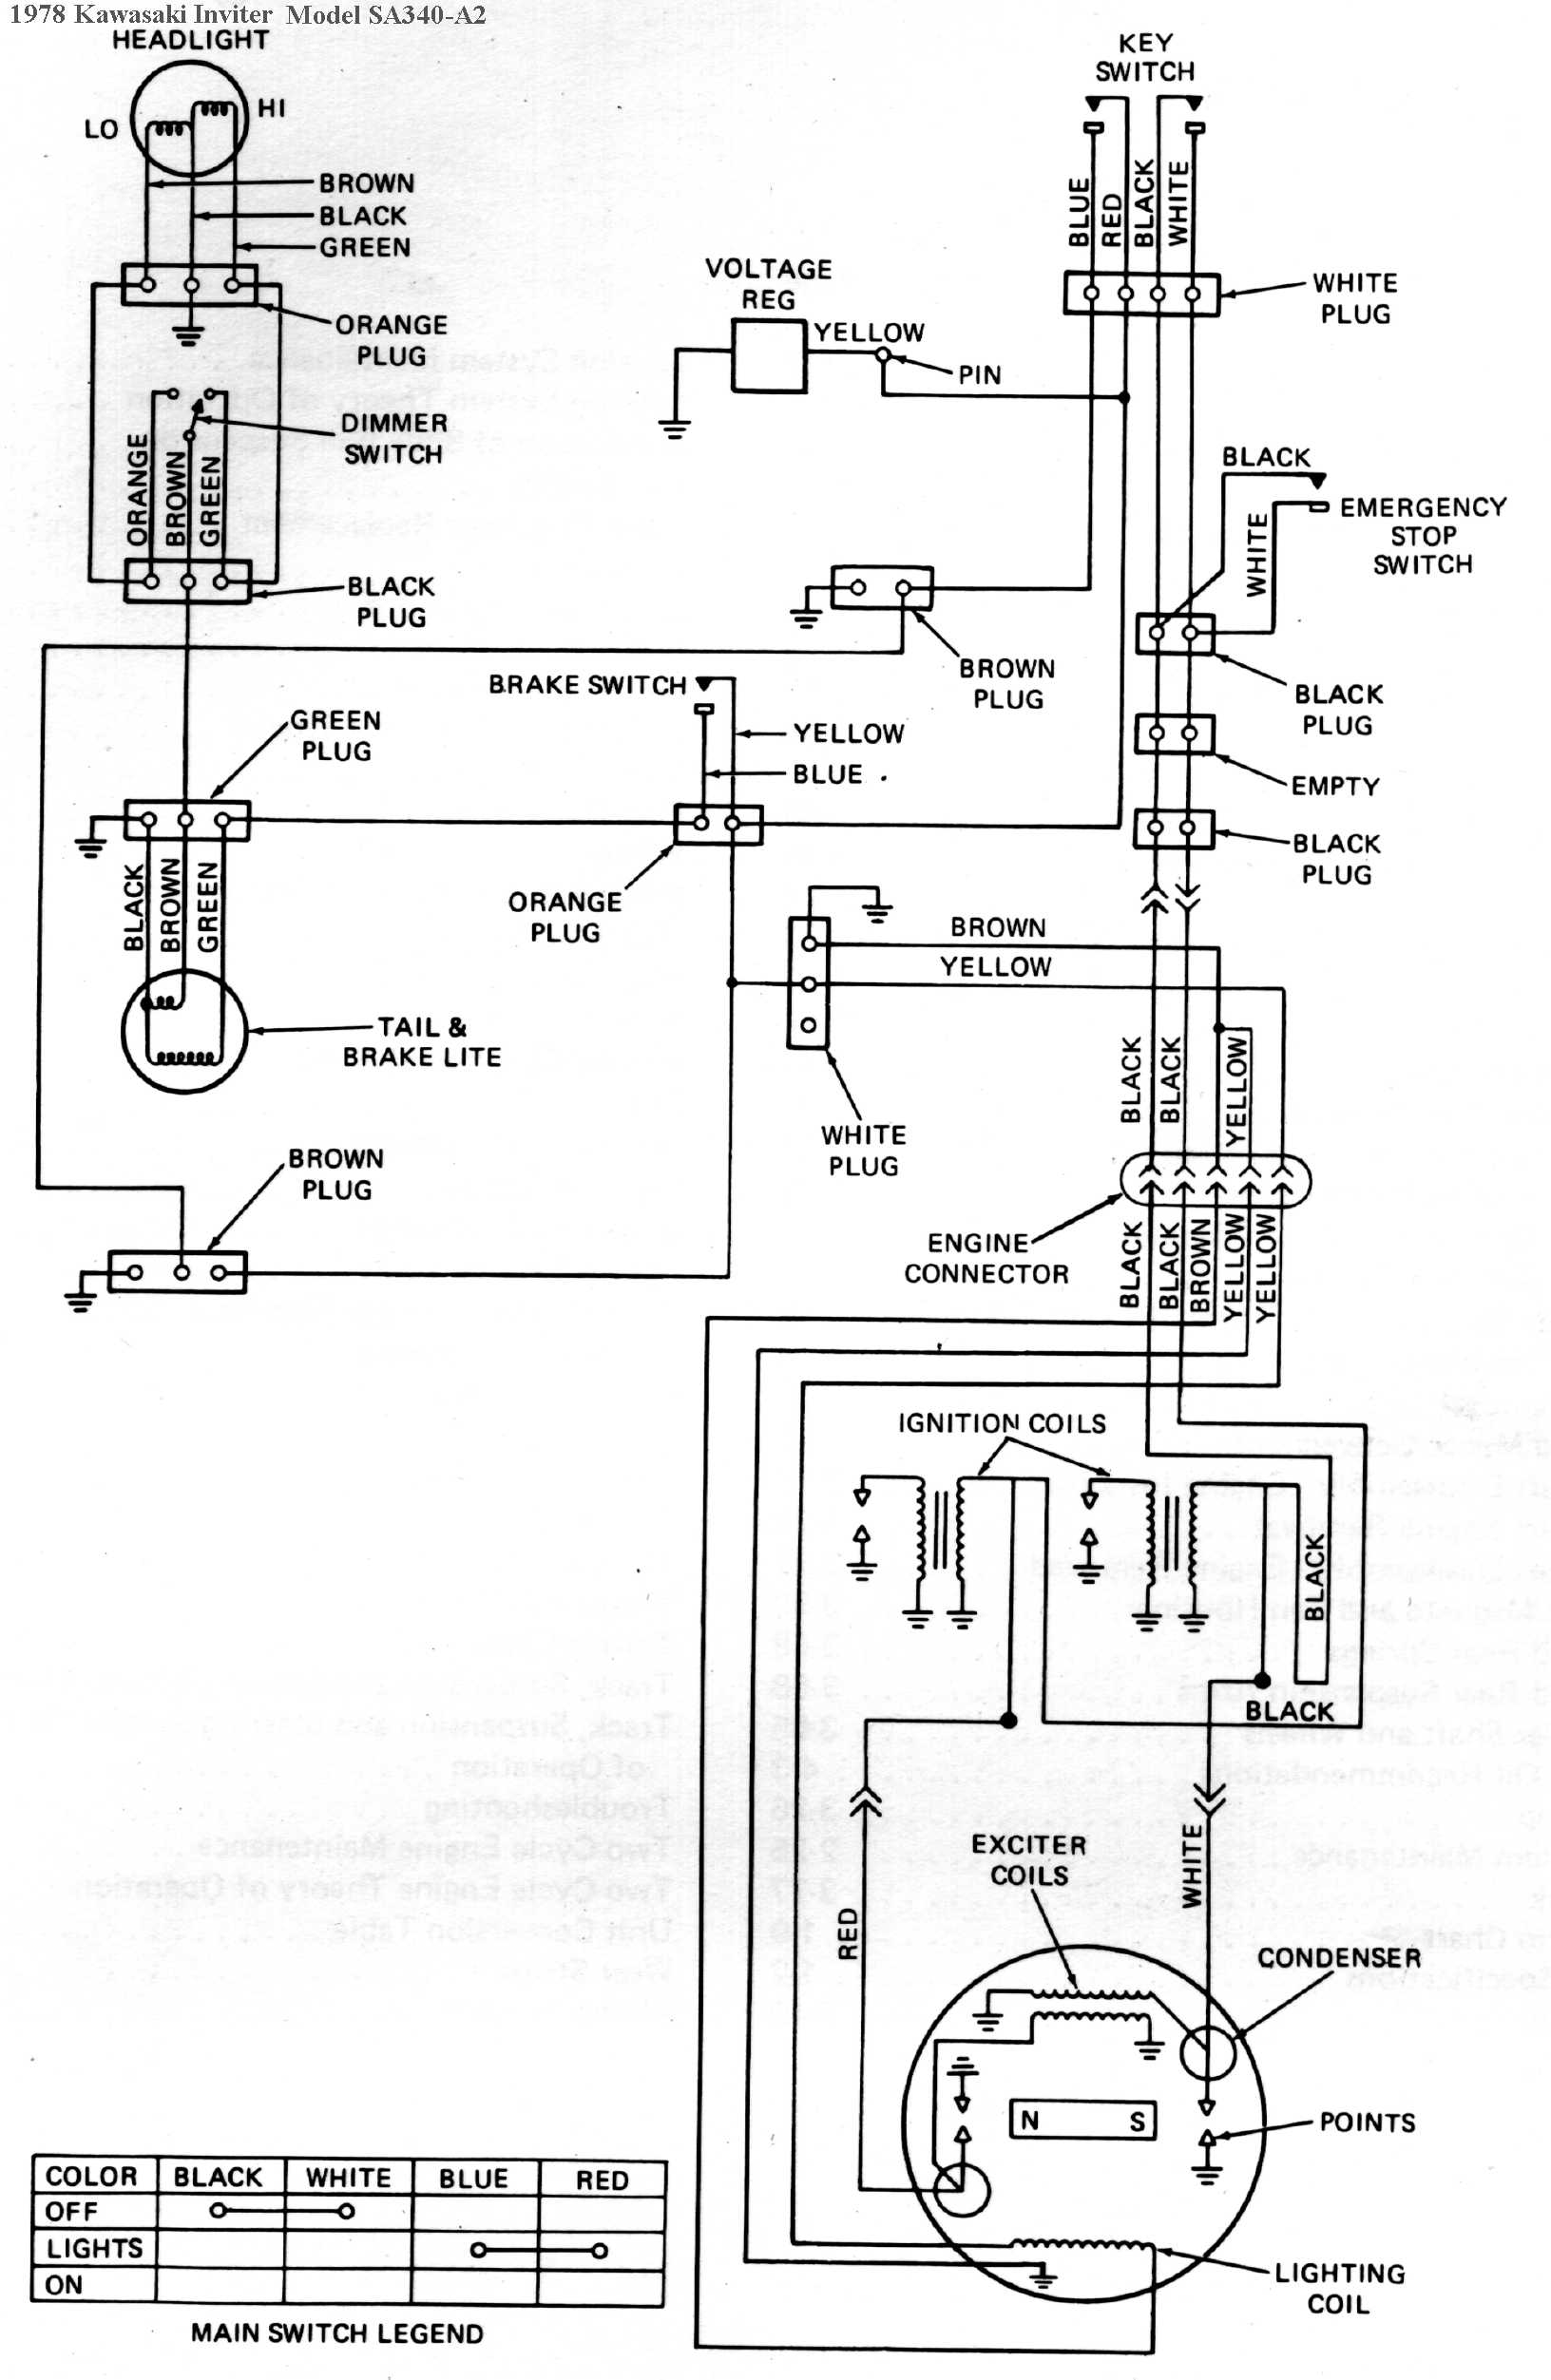 hight resolution of 1981 kawasaki wiring diagram kawasaki1981 ltd electric start 1981 ltd manual start 1982 interceptor